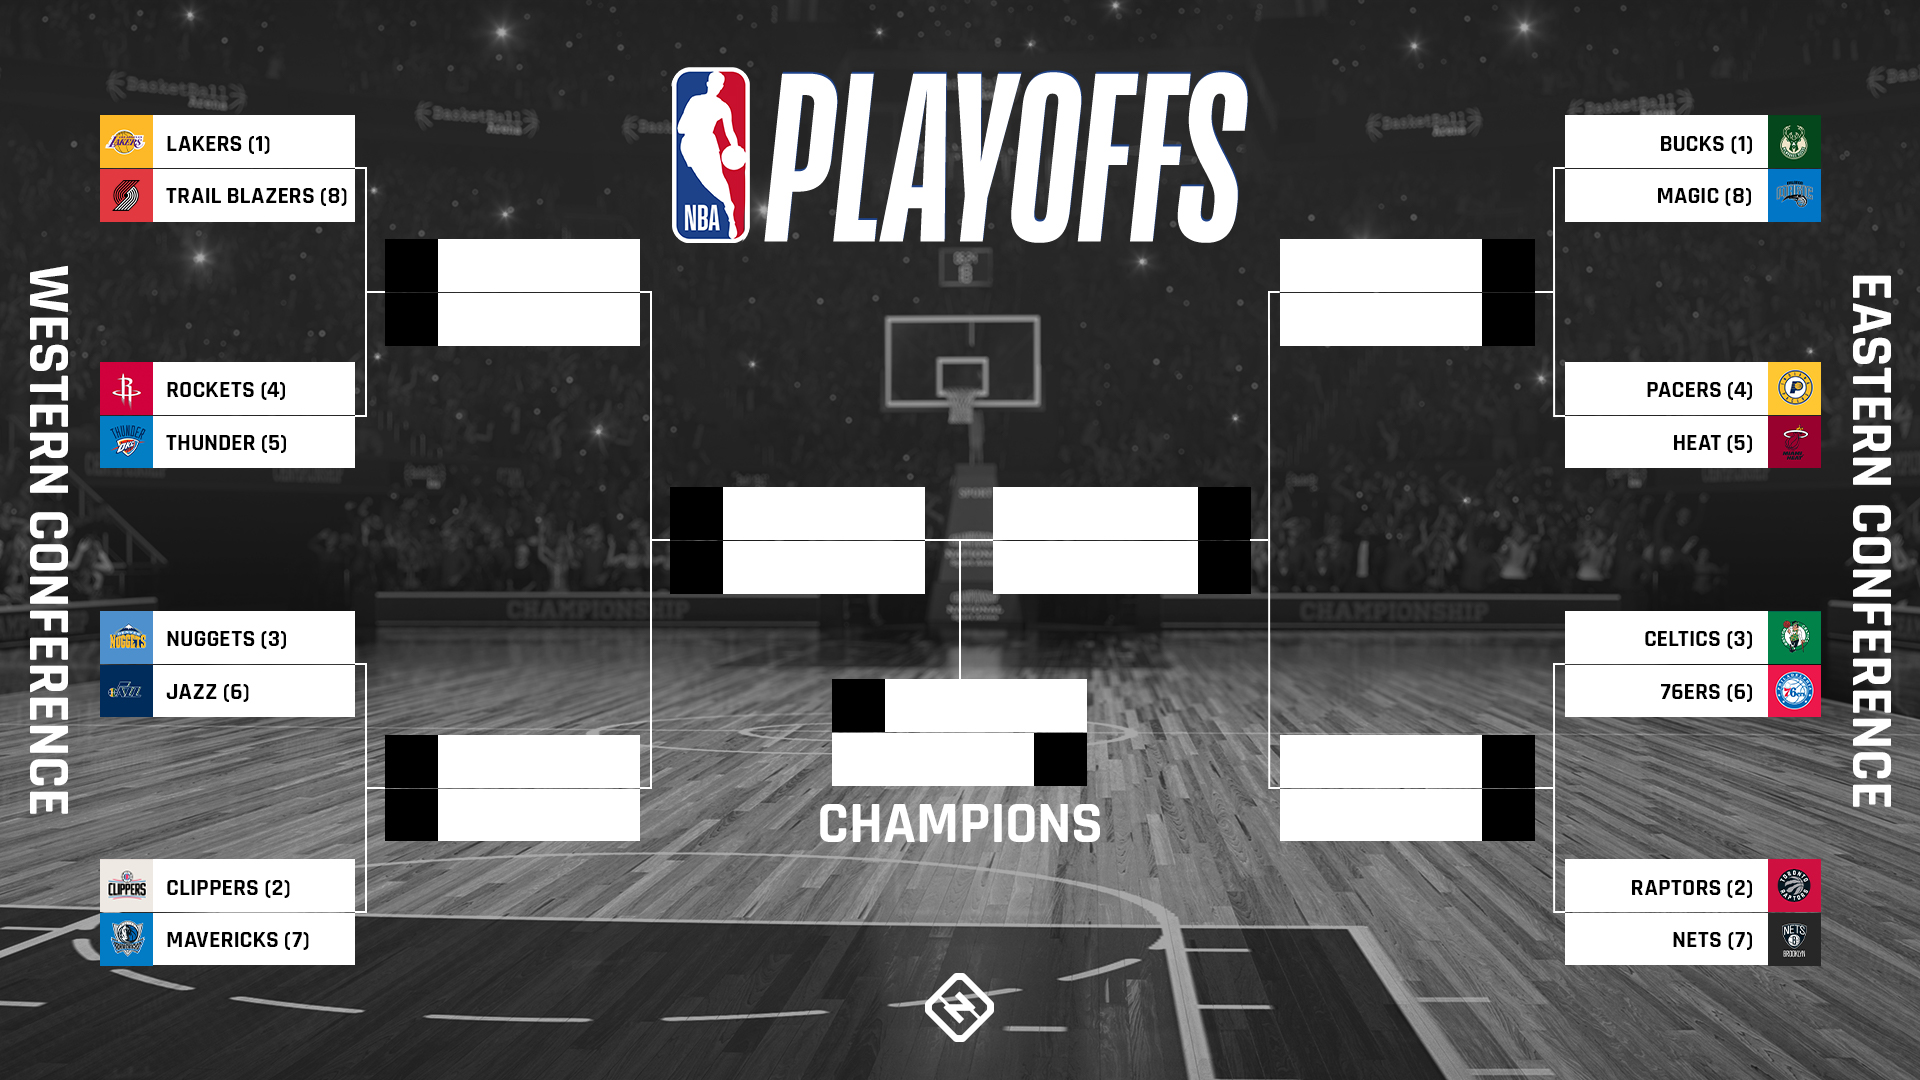 NBA playoffs bracket 2020: Updated TV schedule, scores, results for Round 1 in the bubble | Sportal - World Sports News